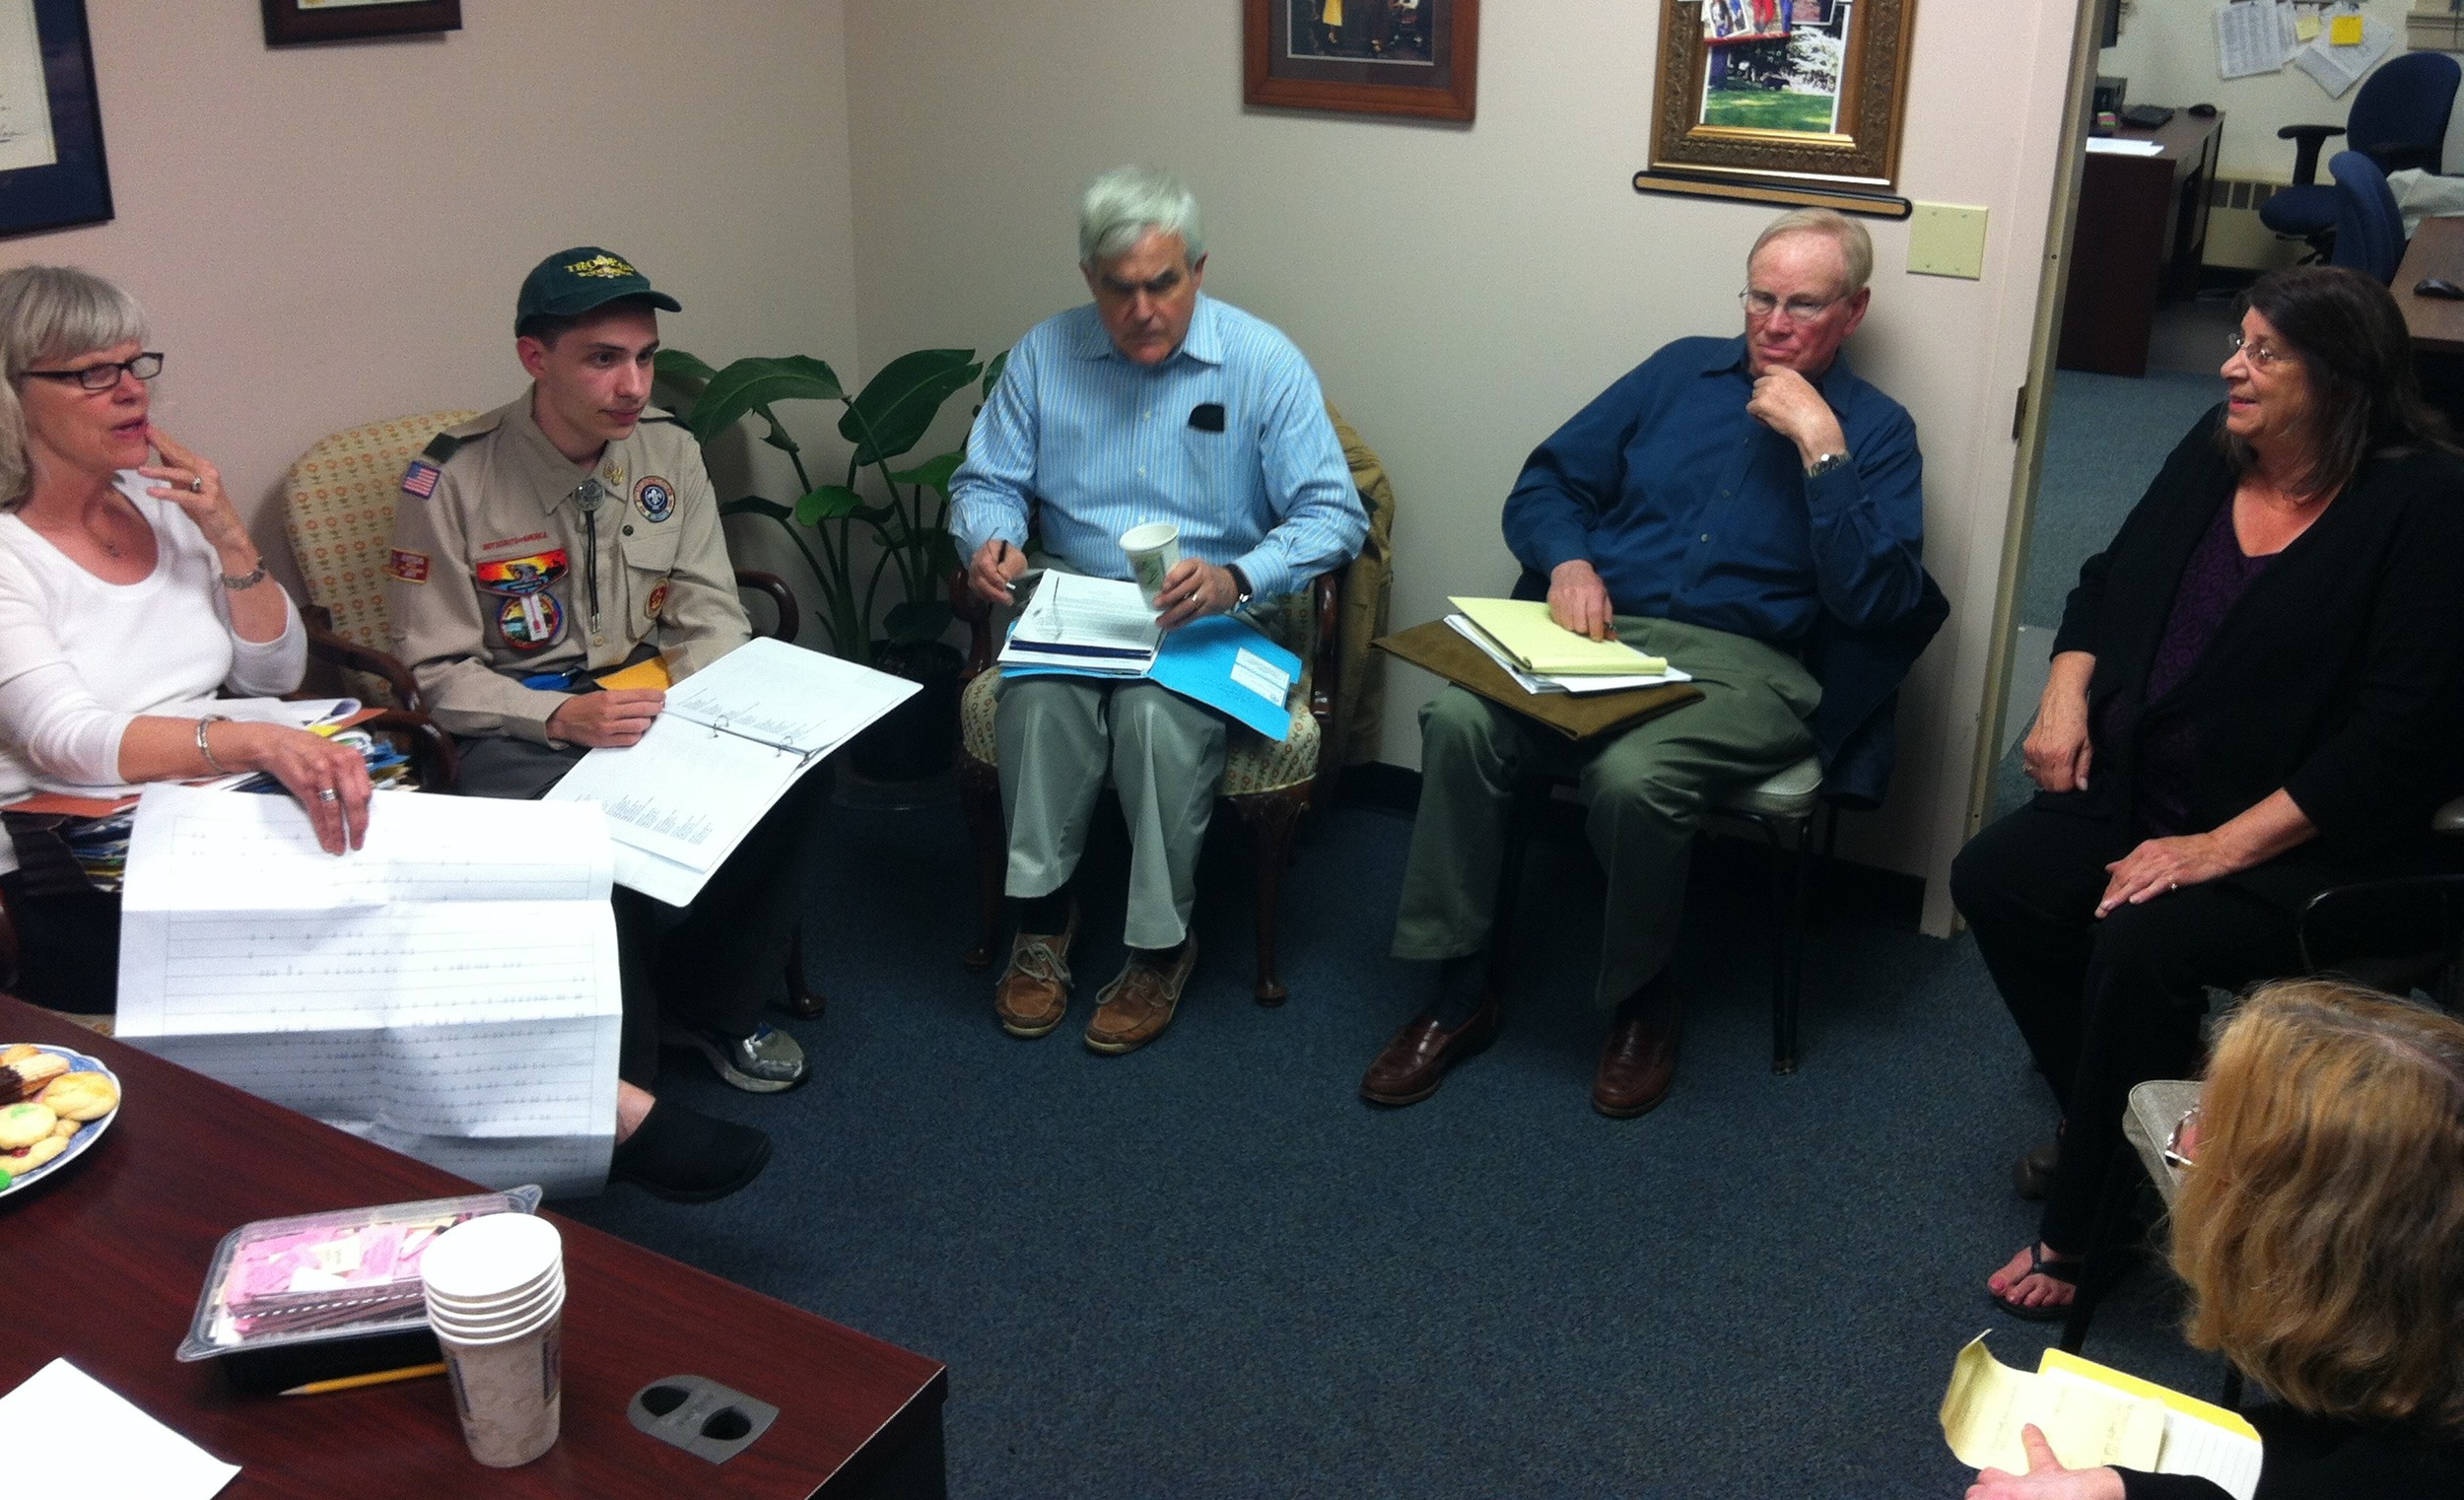 Boy Scout Ben DiBuduo meets with the Eastside Board of Directors in May 2013 to present his completed Eagle Scout Project.